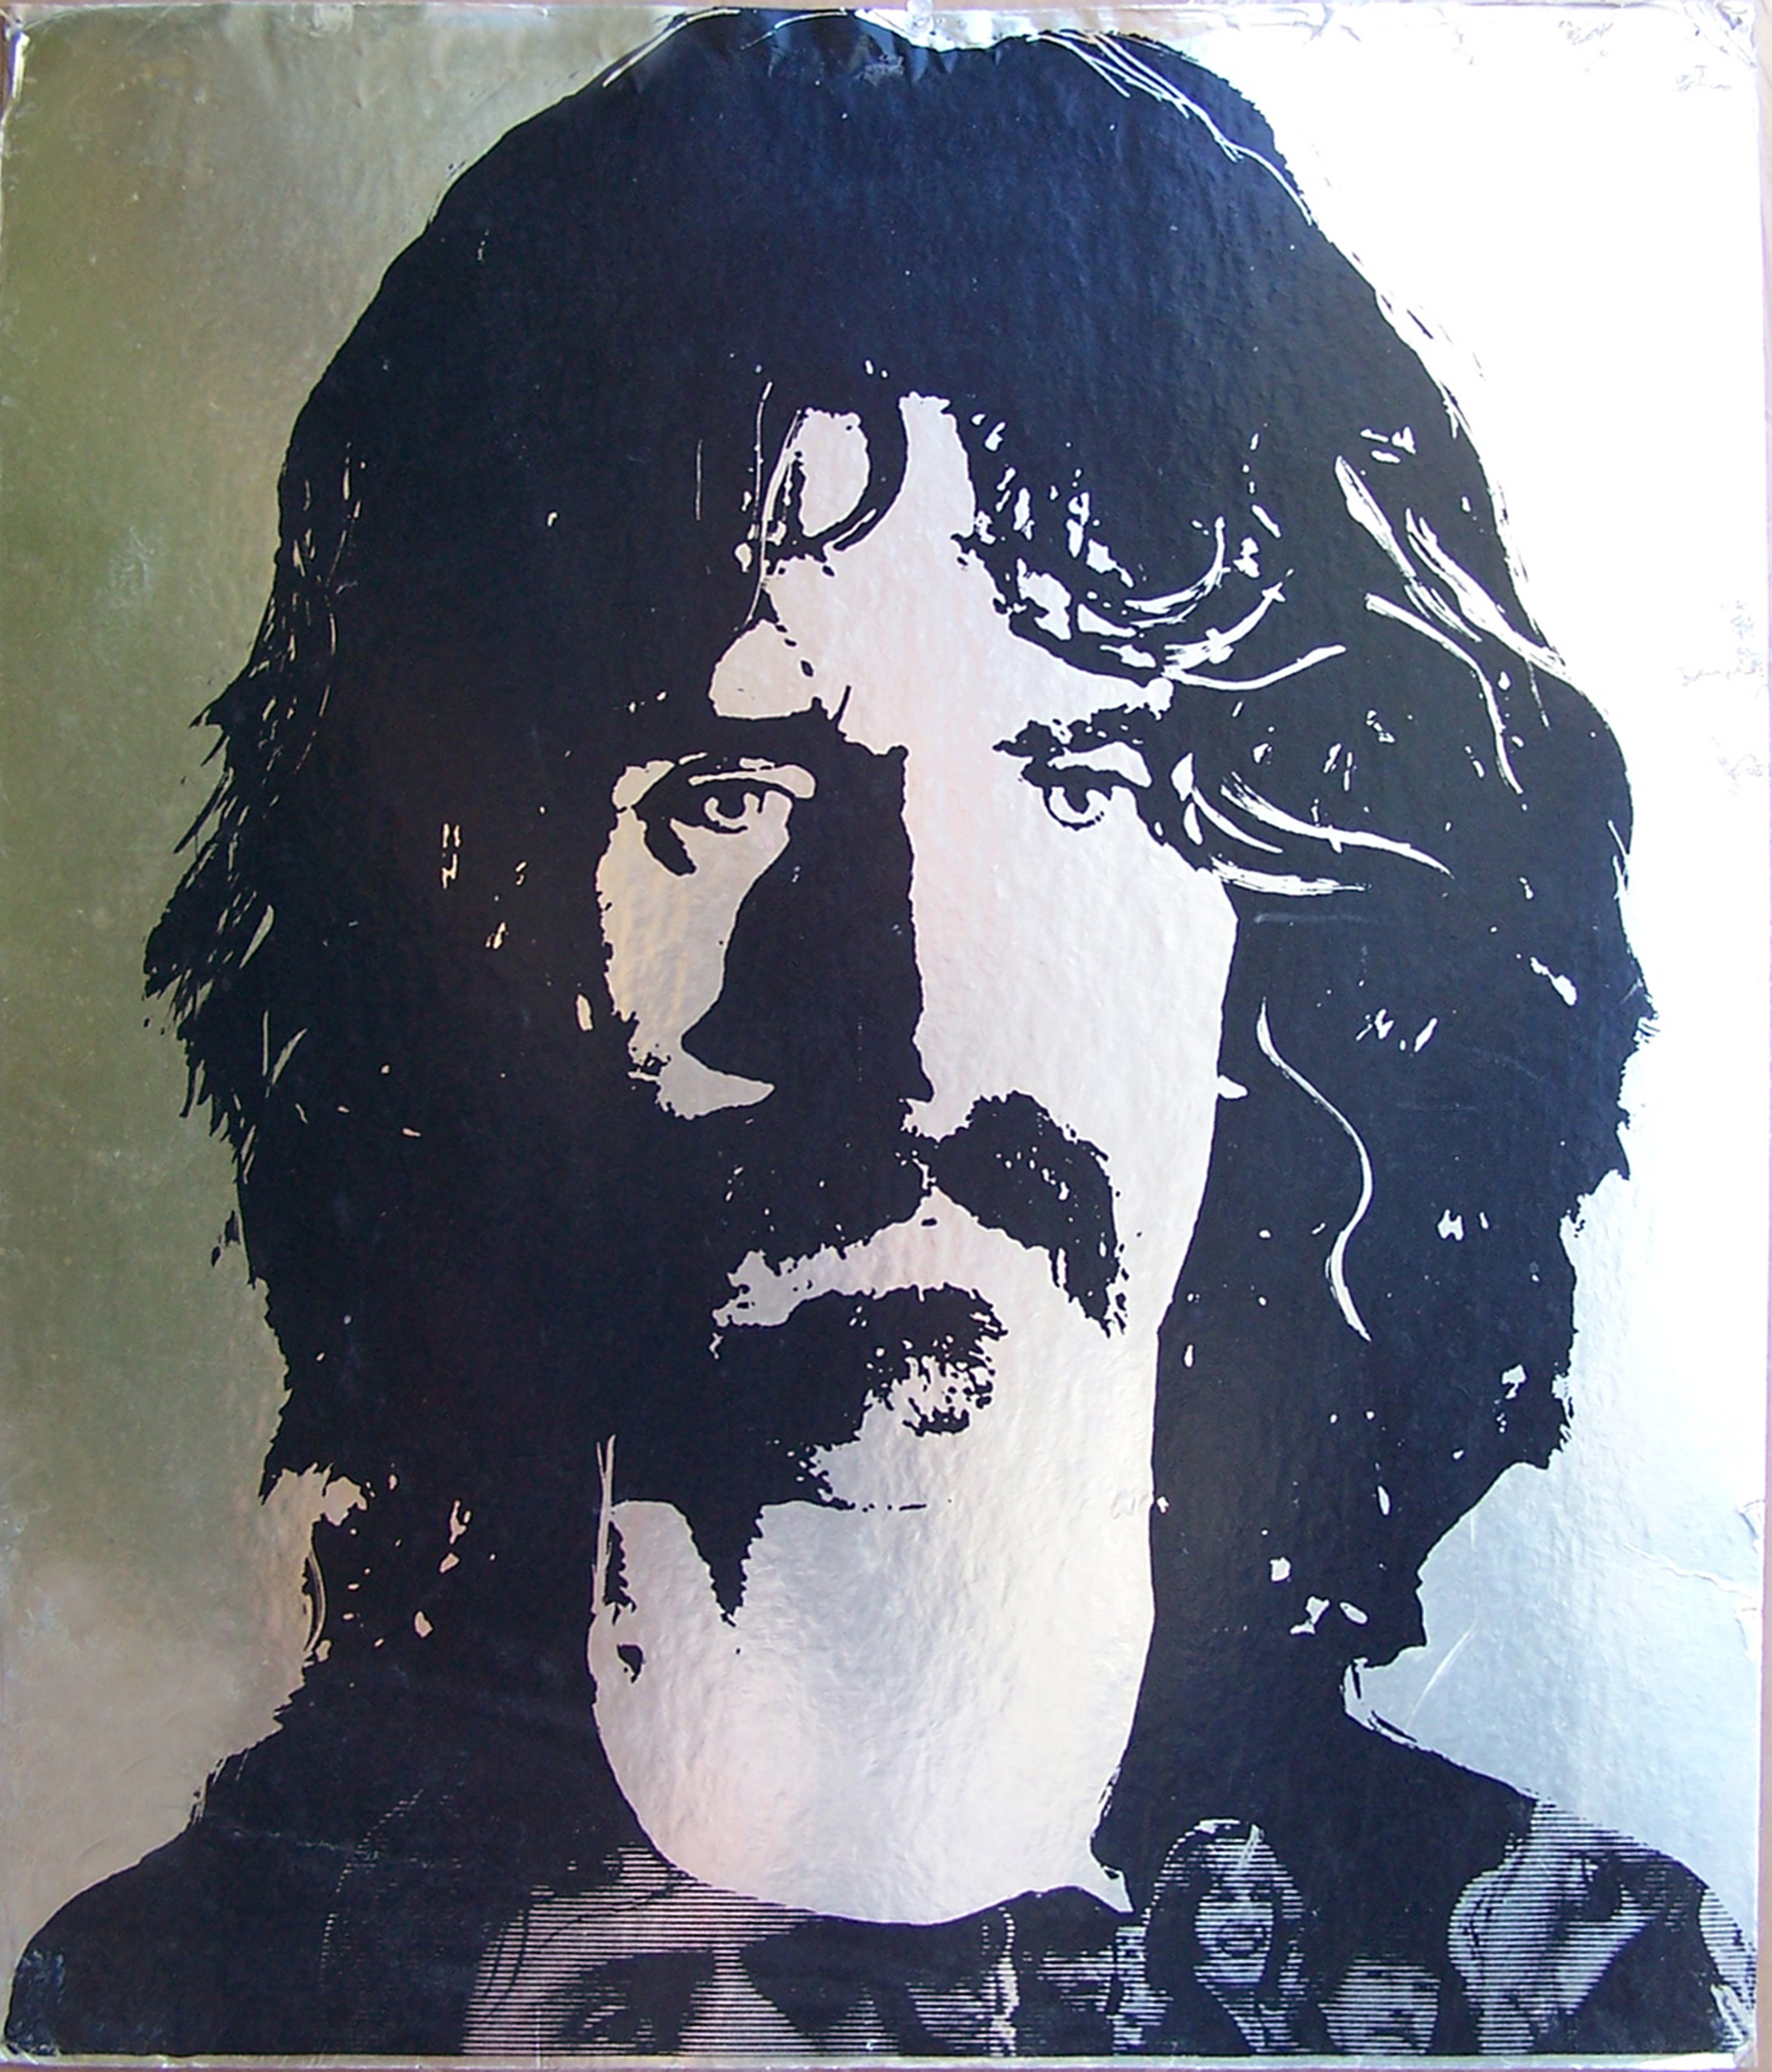 Frank Zappa Happy Birthday regarding frank zappa and the mothers of invention | 00individual